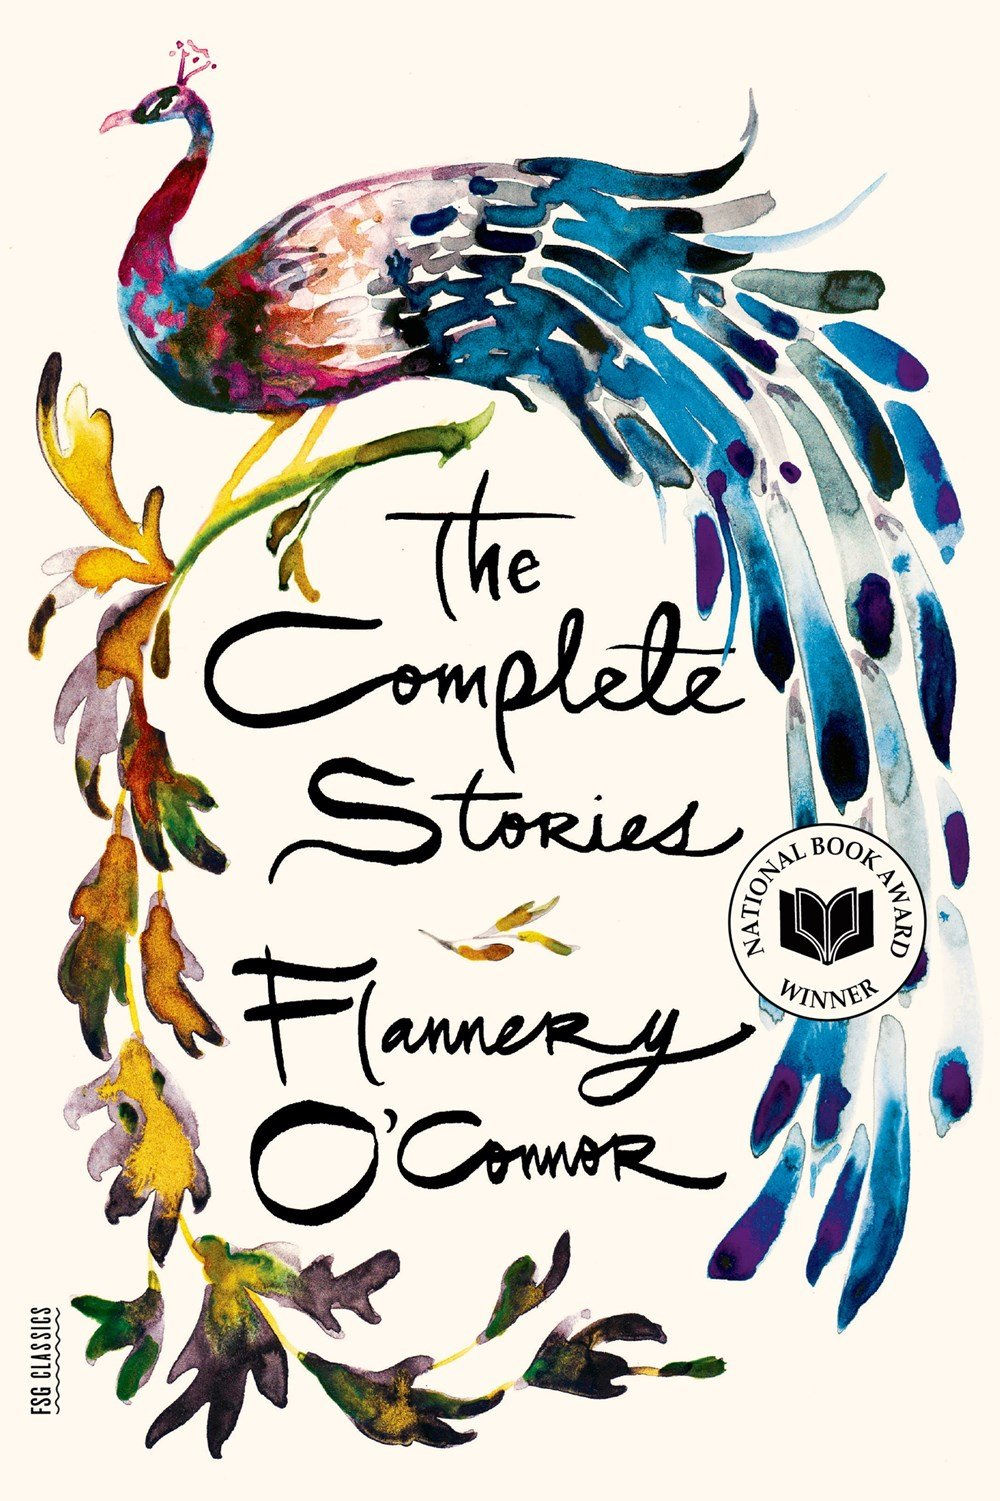 Suki: The Complete Stories - by Flannery O'Connor (FSG Classics)